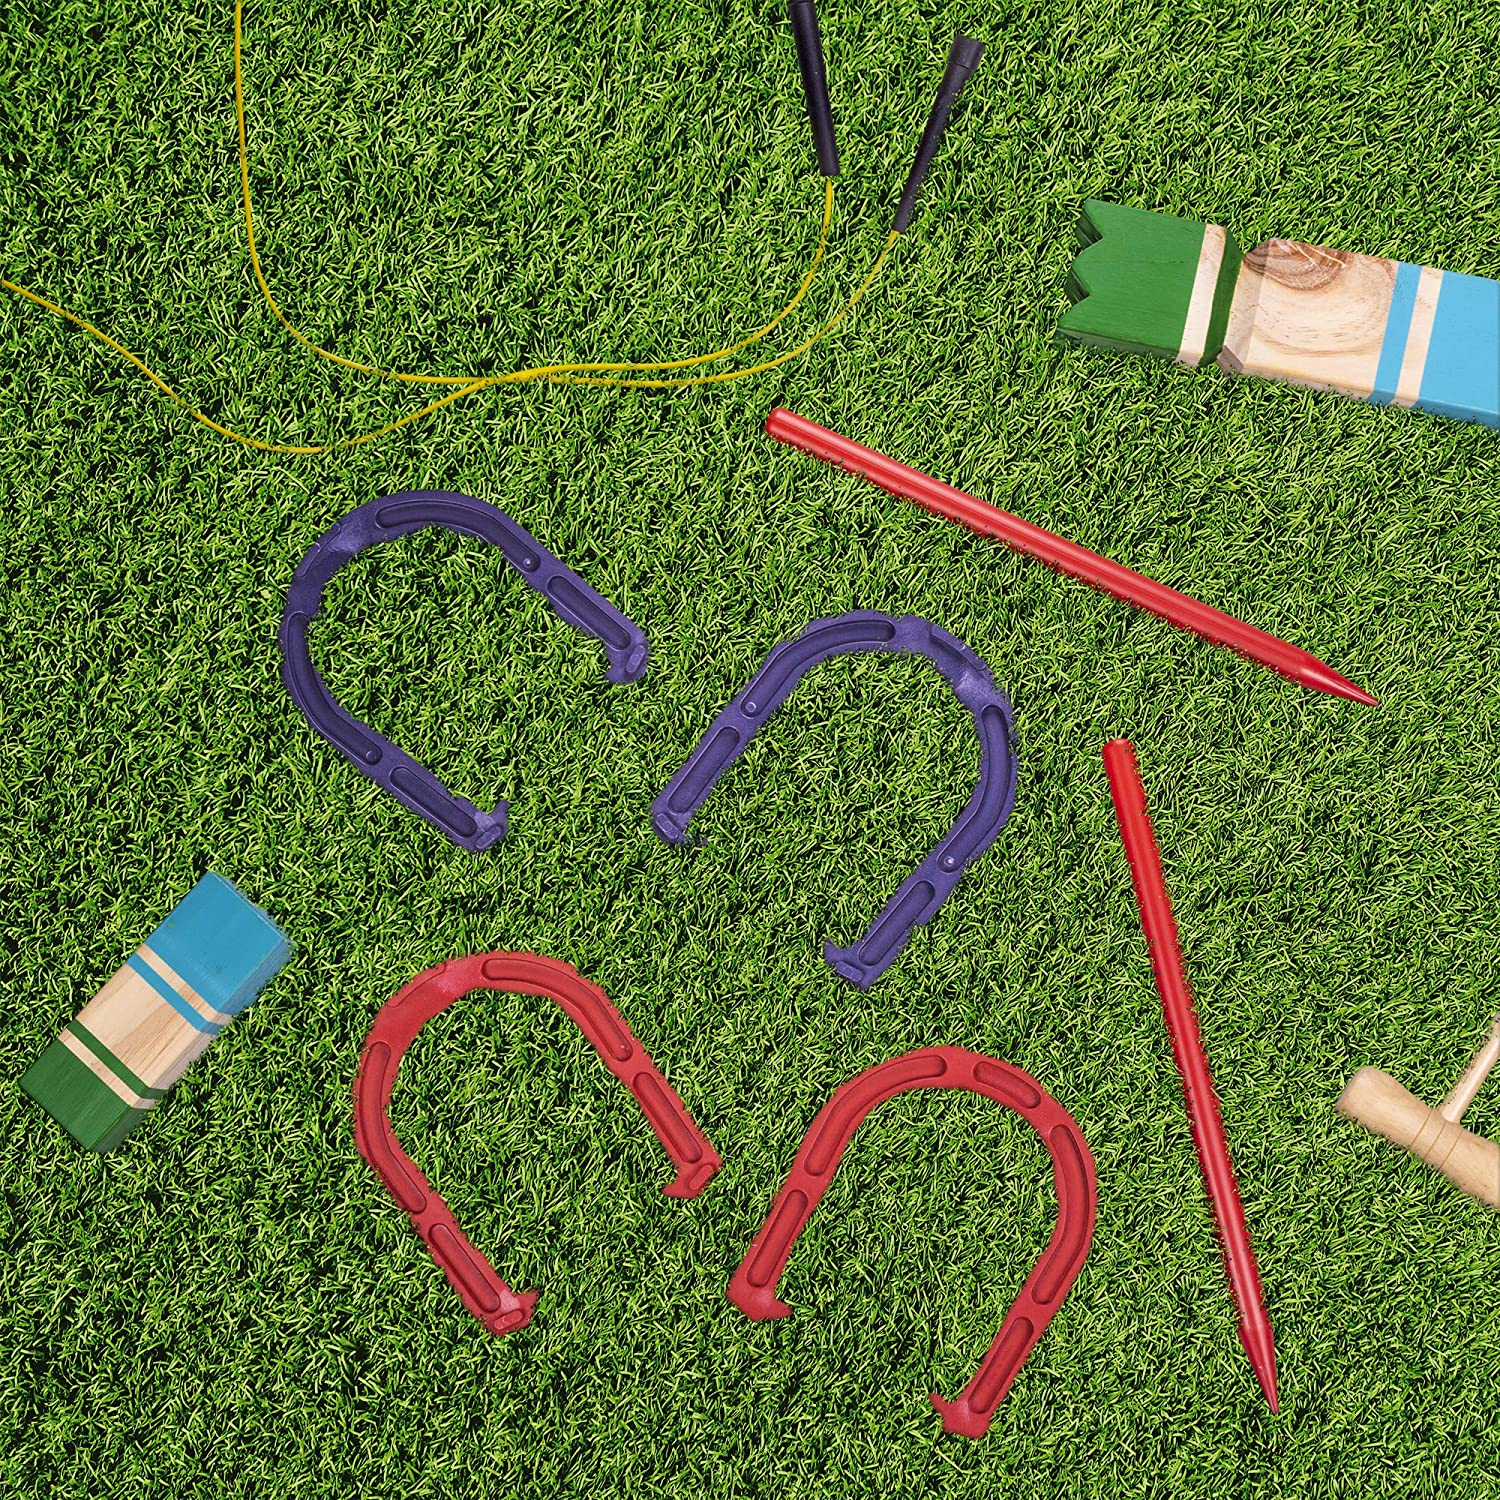 Crown Sporting Goods Deluxe Indoor and Outdoor Horseshoe Game Set : Sports & Outdoors